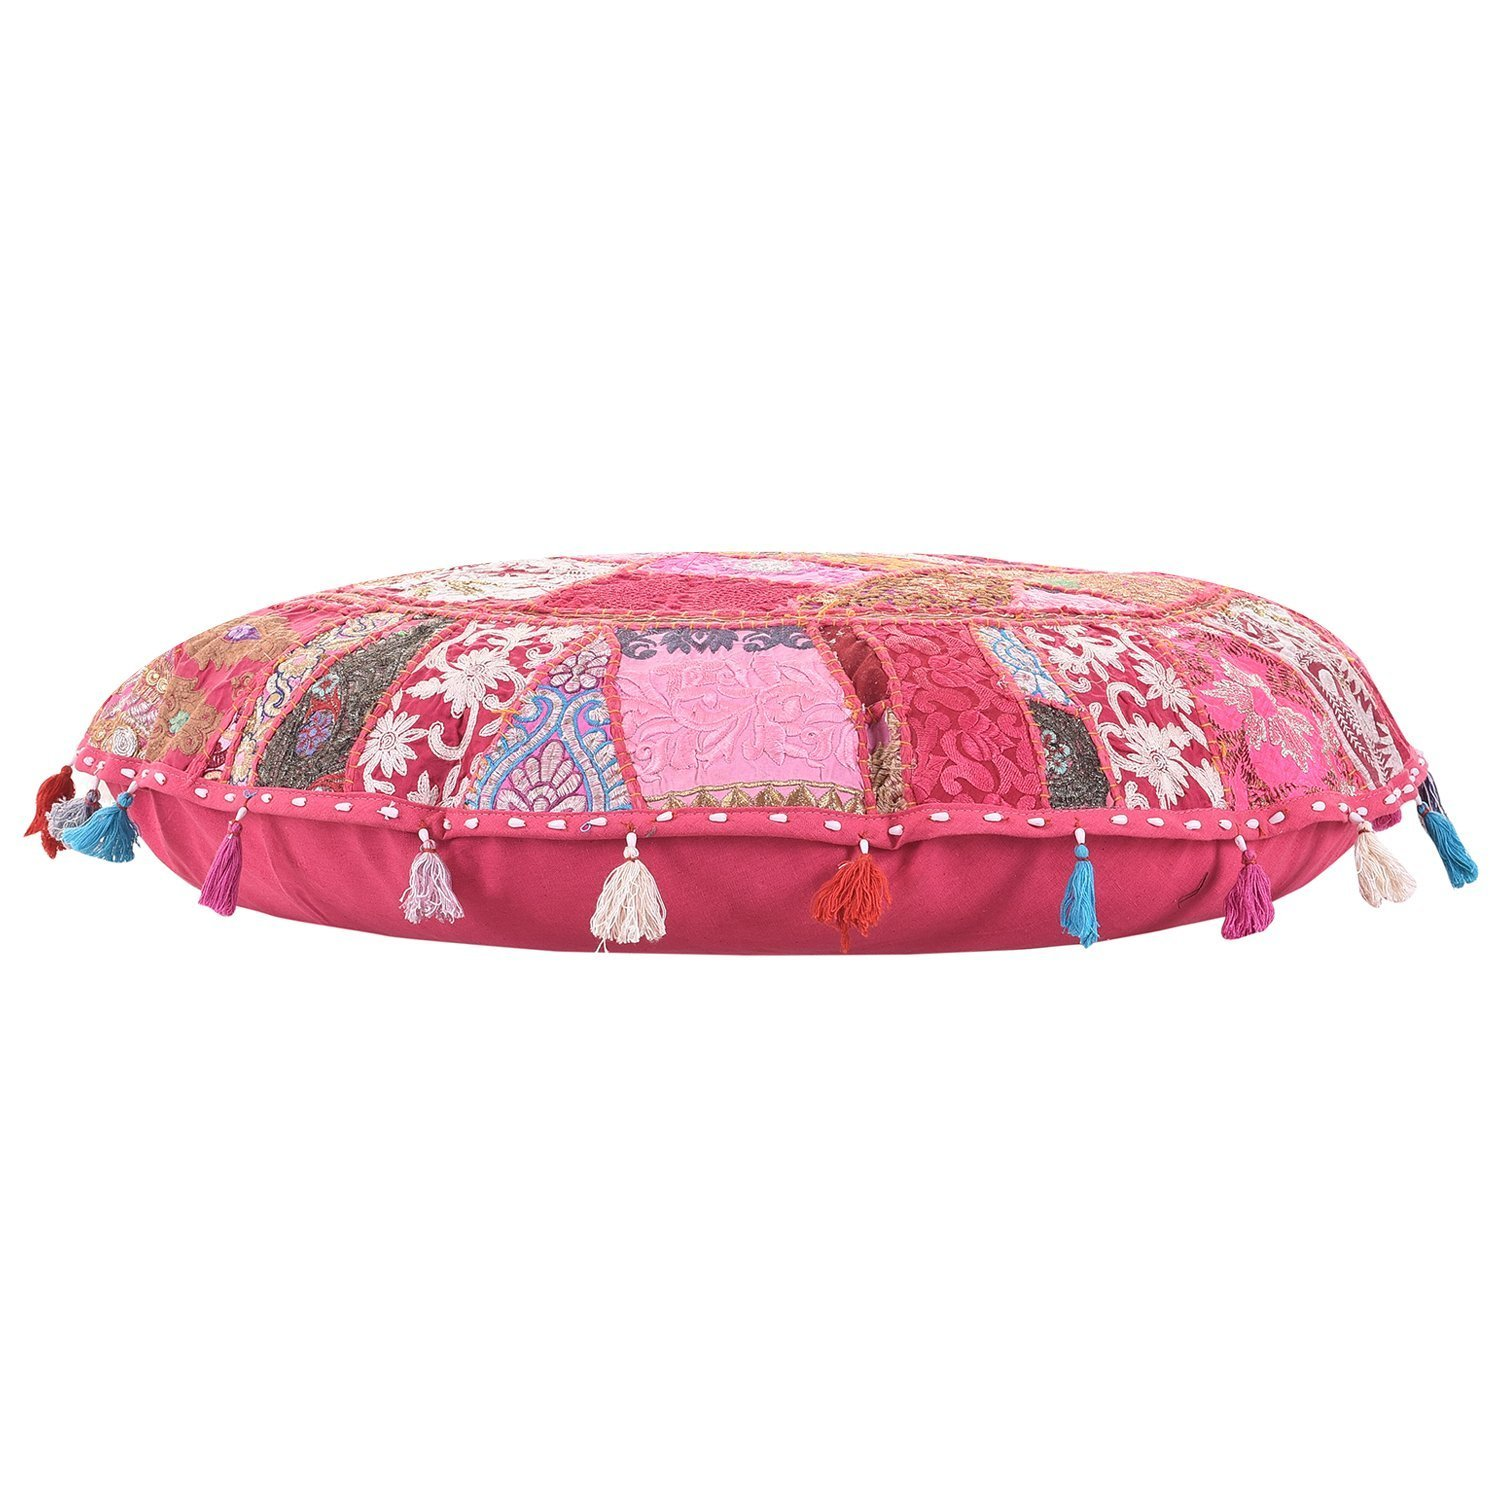 100/% Cotton Art Decor Cushion Bohemian Round Floor cushion,Traditional Vintage Indian Pouf Floor//Foot Stool Only Cover Filler not Included